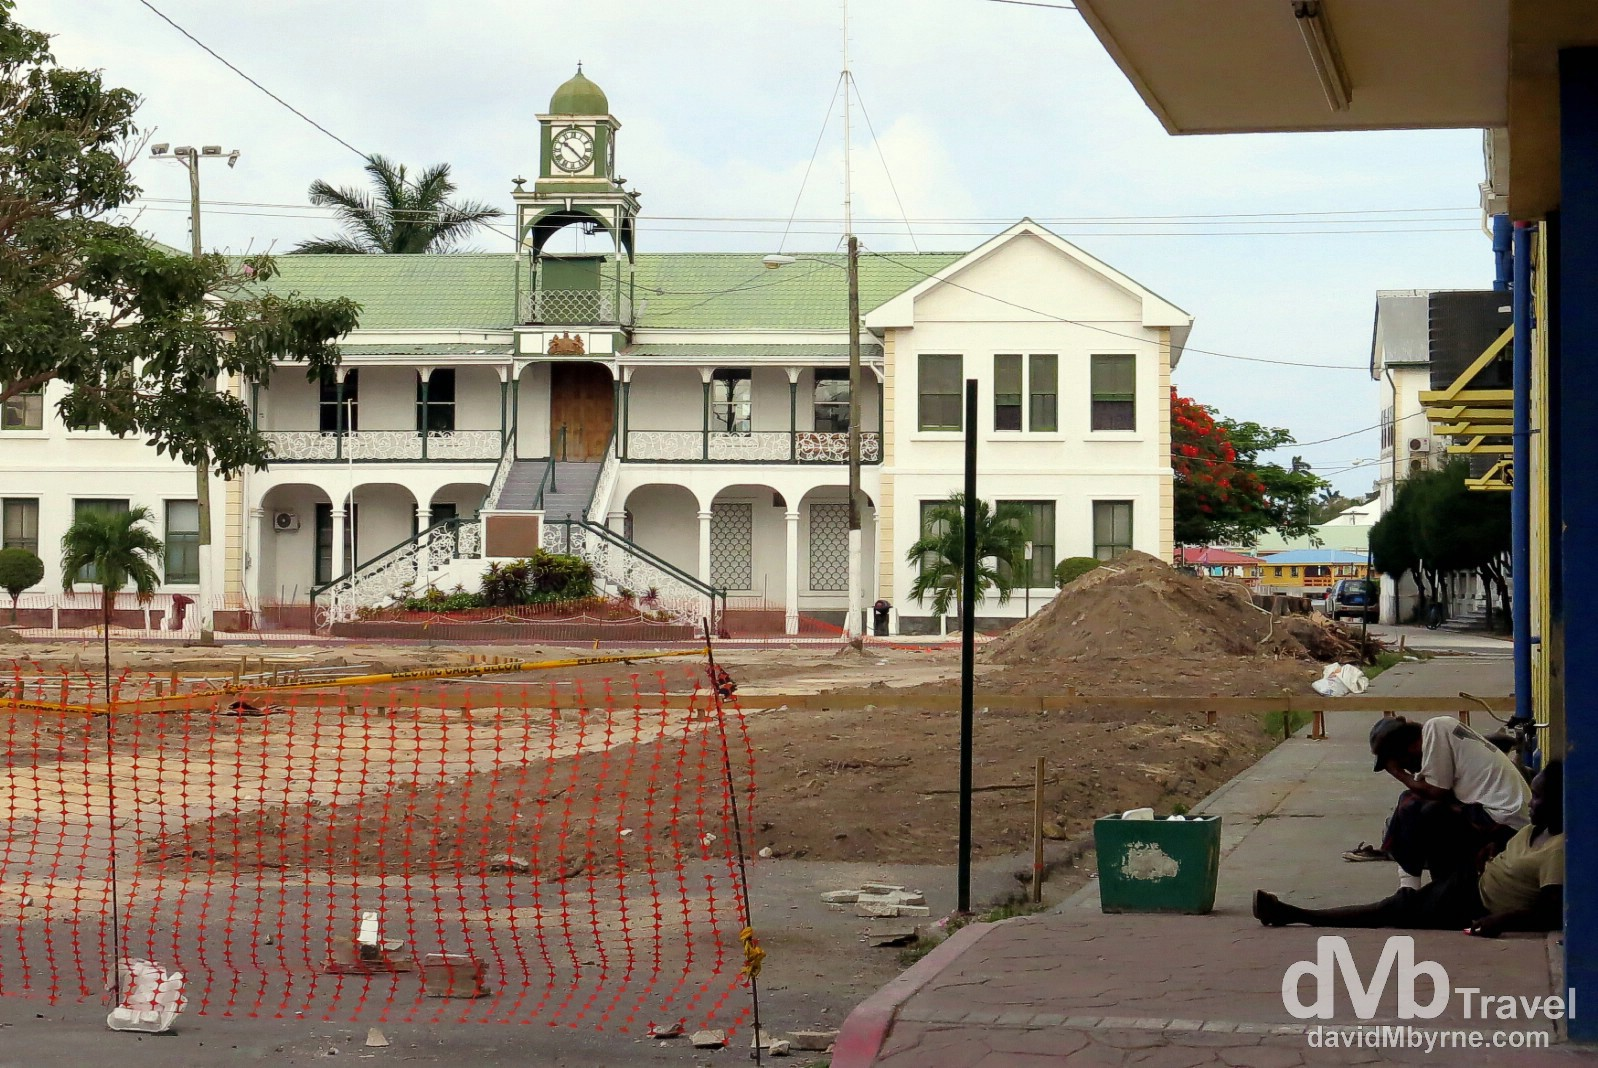 The 1926 Belize City Court House fronting Battlefield Park, Belize City, Belize. May 12th 2013.